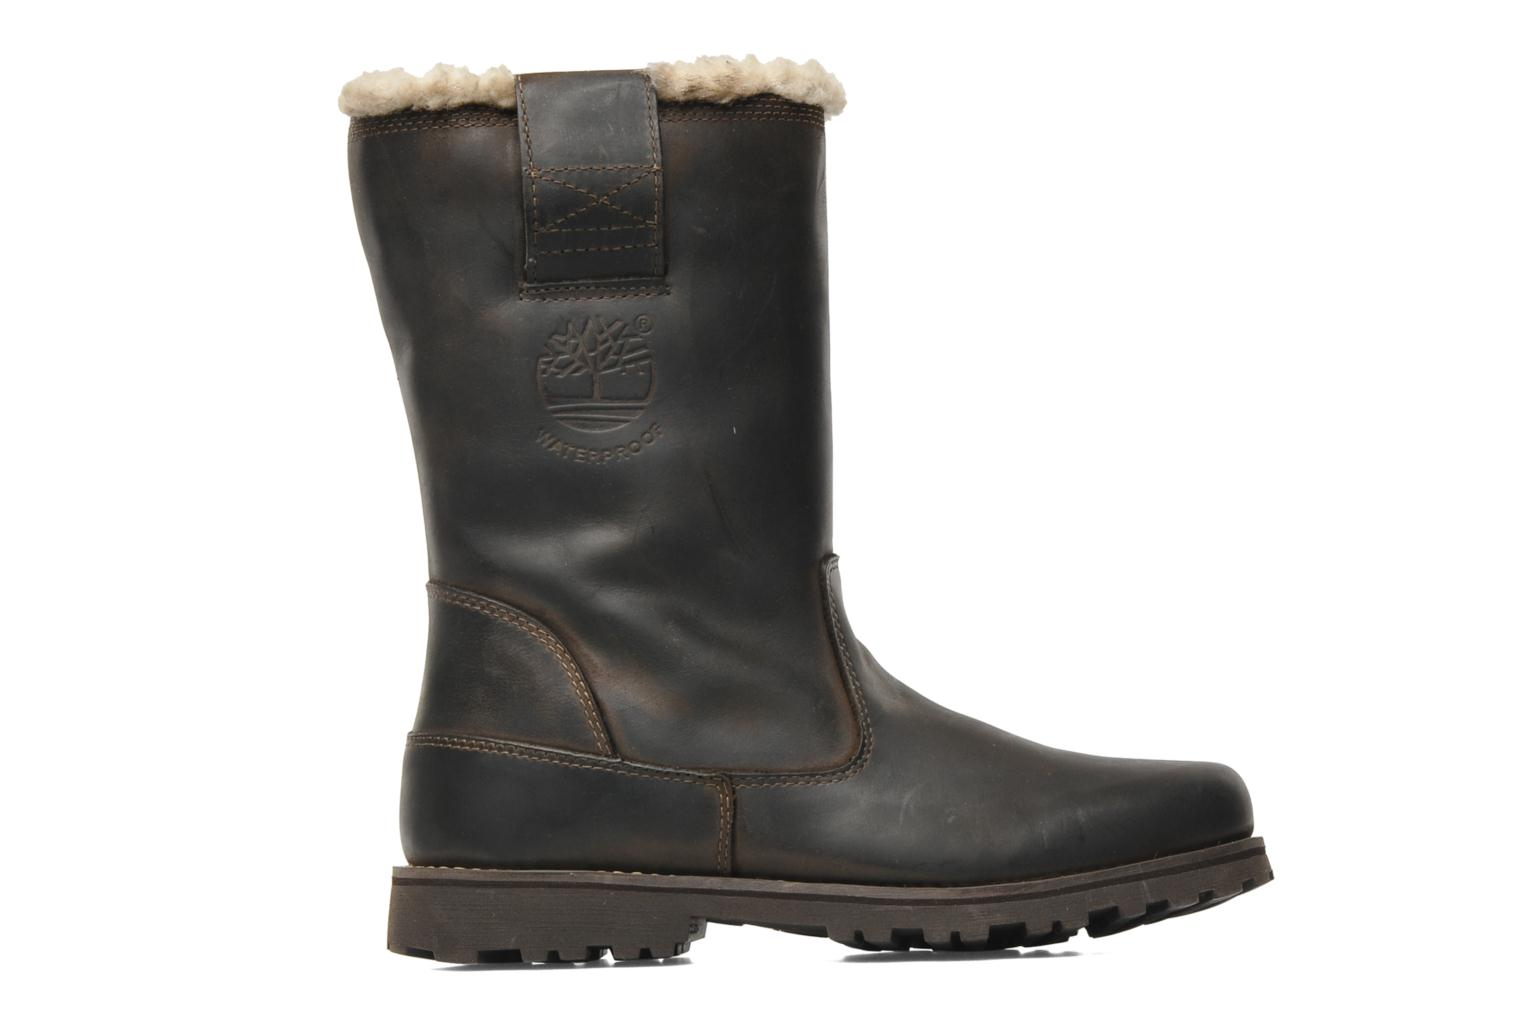 Bottes Timberland 8 In Pull On WP Boot with Shearling Marron vue derrière